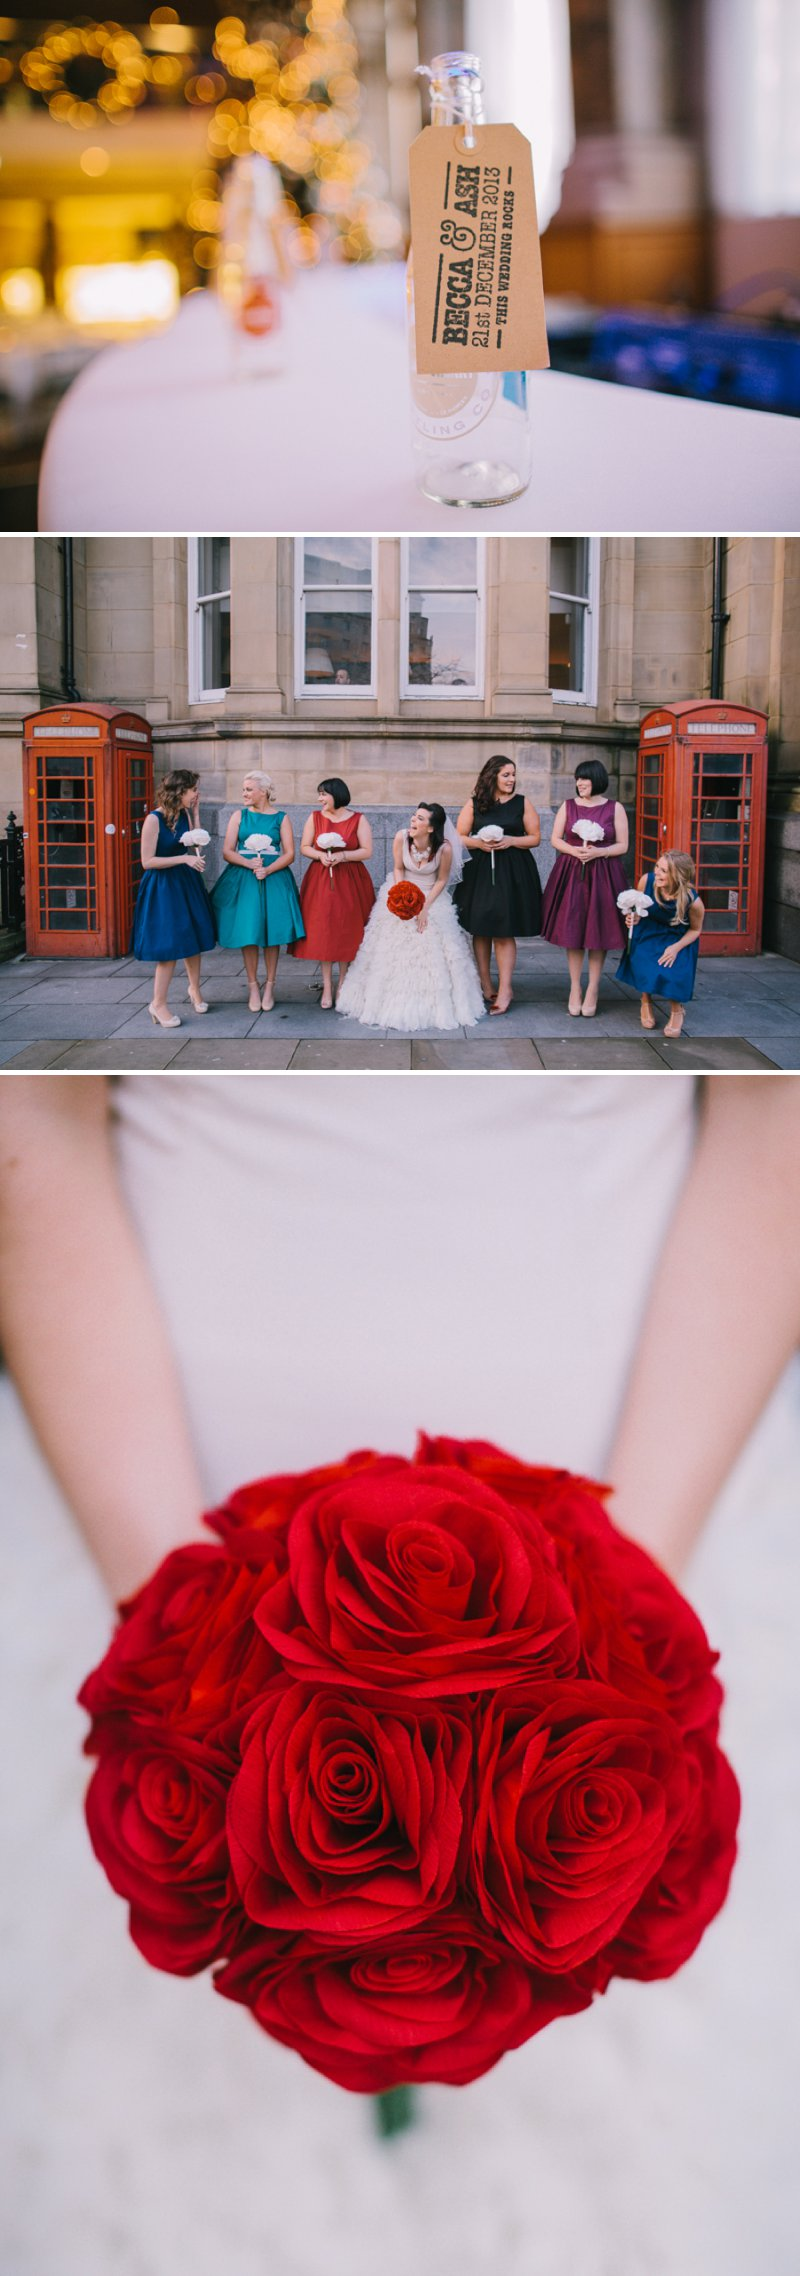 Contemporary Christmas Wedding At Aspire Leeds With Bride In Vivienne Westwood Pumps And A Statement J Crew Necklace With Groom In Ted Baker Suit And Bridesmaids In Brightly Coloured Lindy Bop Dresses Images From Chris Barber Photography 1